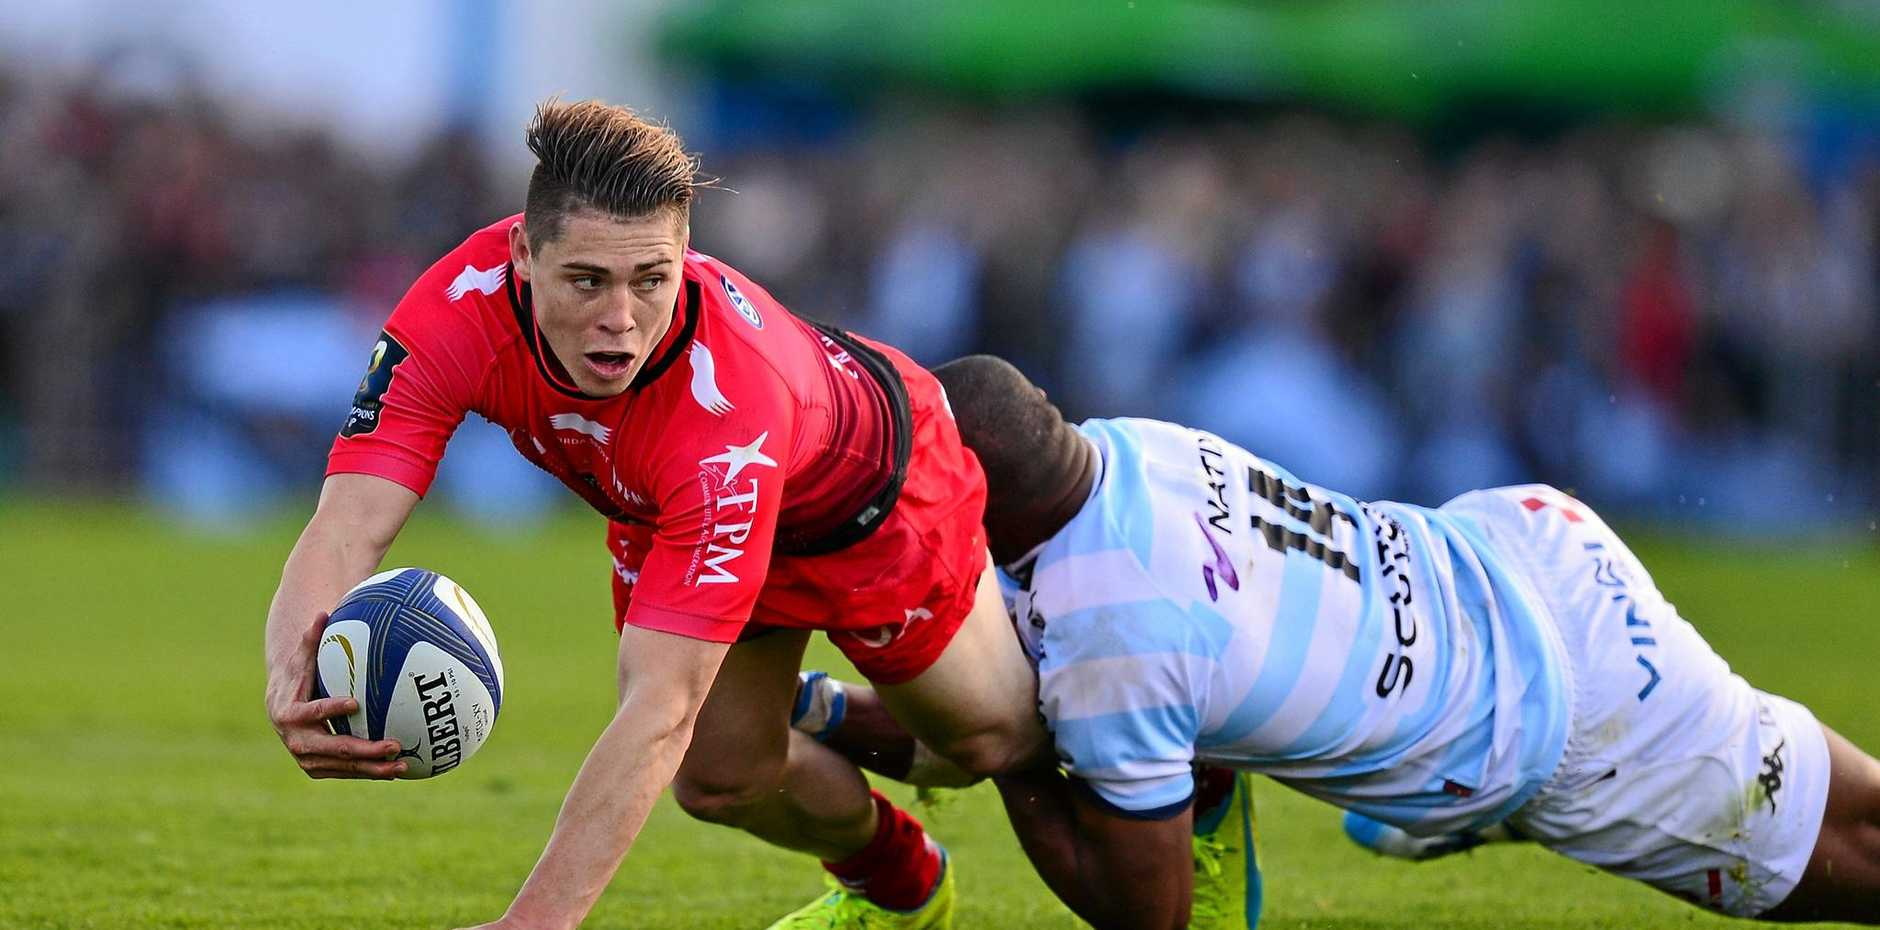 James O'Connor of Toulon is tackled by Joe Rokocoko of Racing 92.